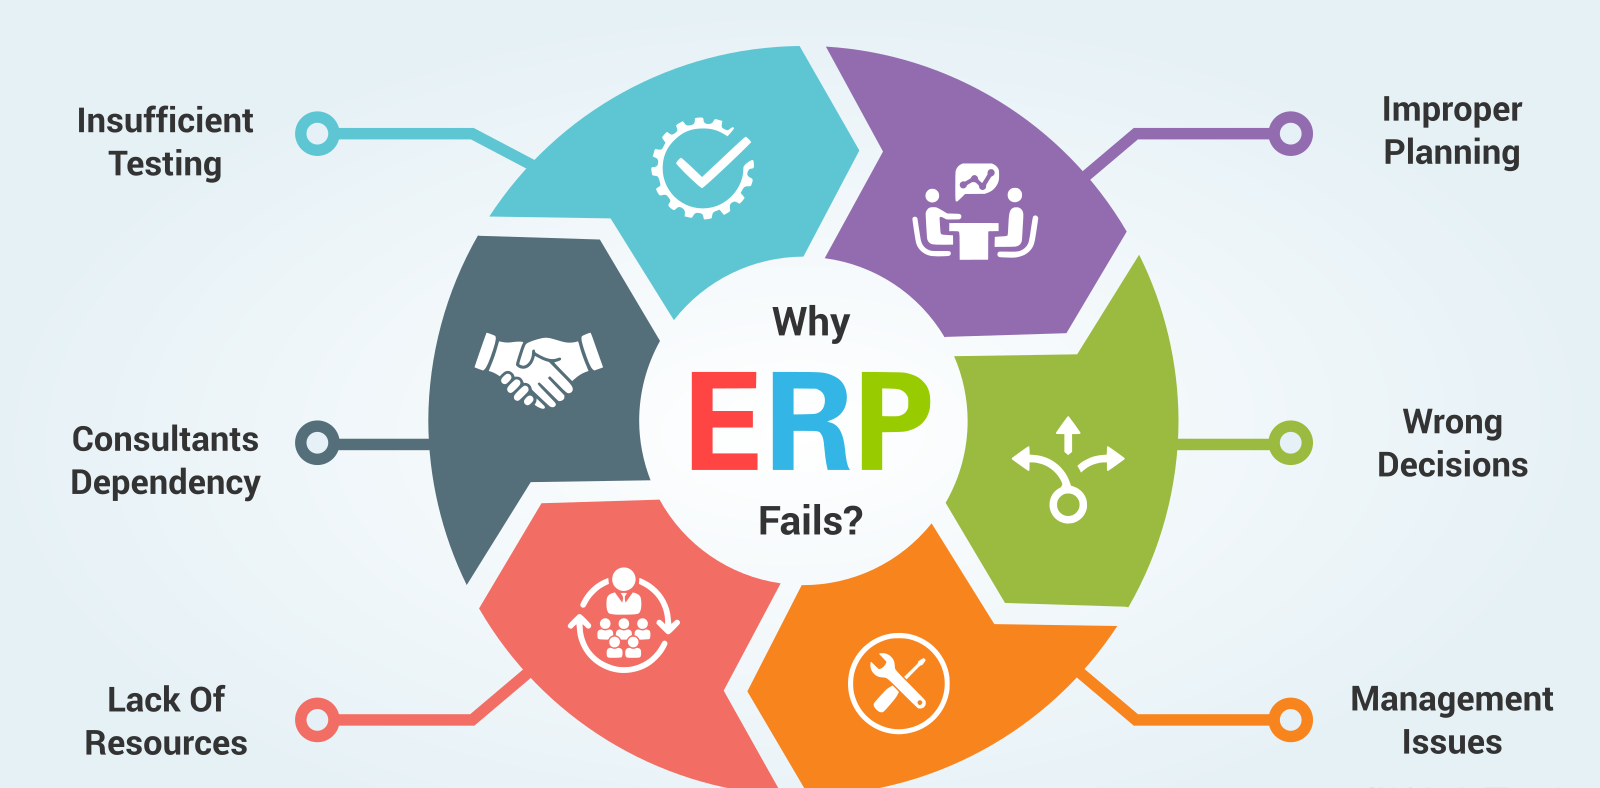 Problems With Inefficient ERP Solutions